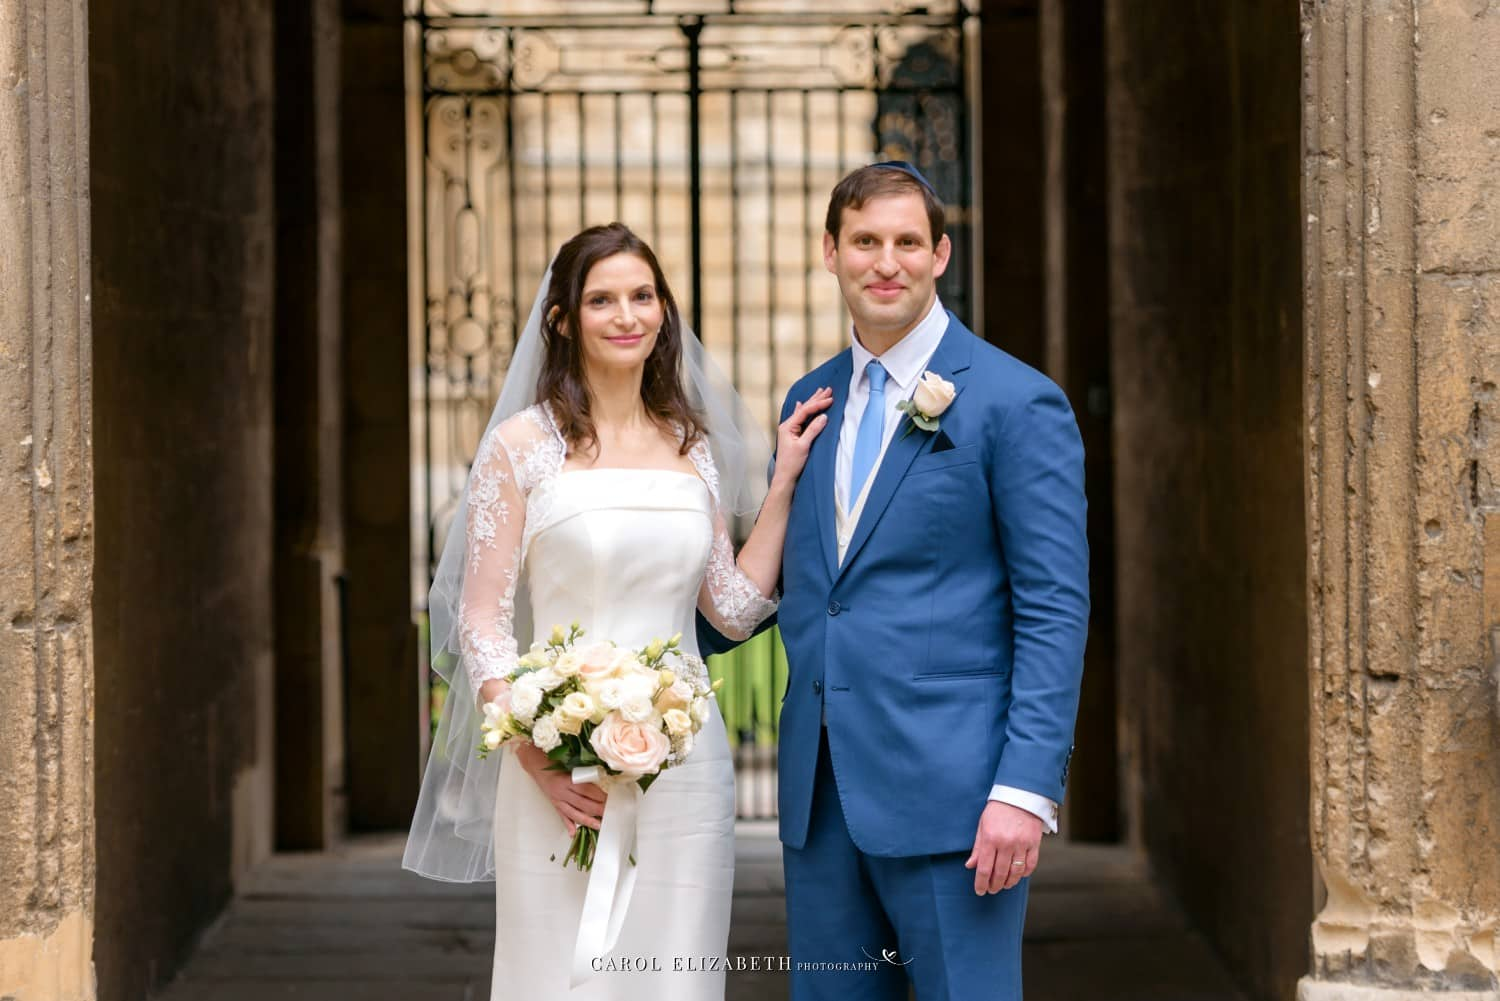 Bodleian Library weddings - Oxfordshire wedding photographer